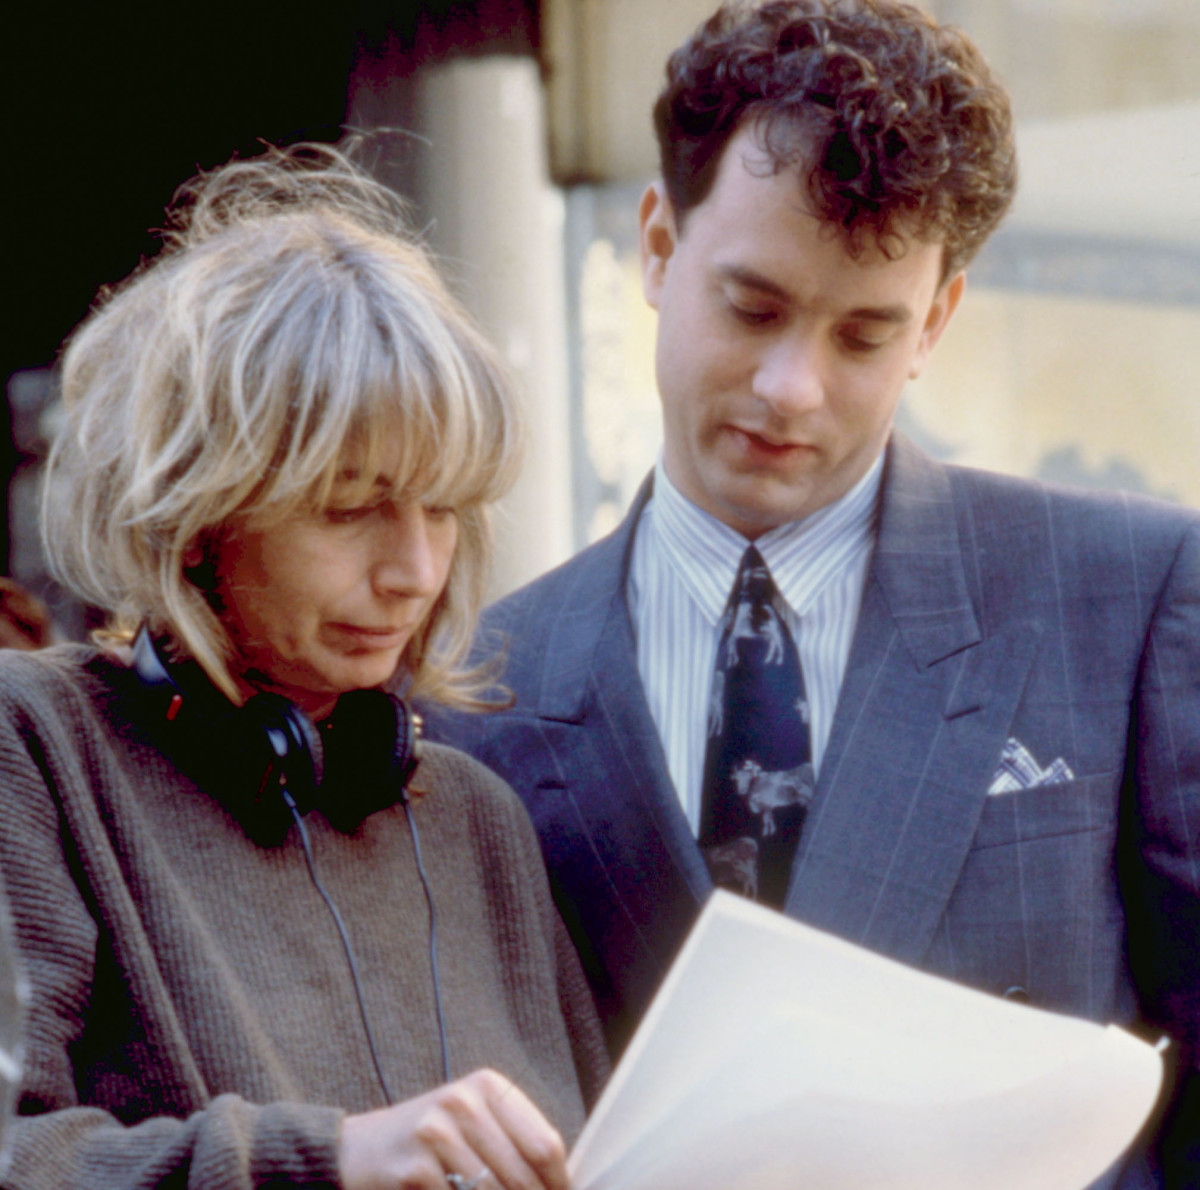 Penny Marshall directing Tom Hanks in Big